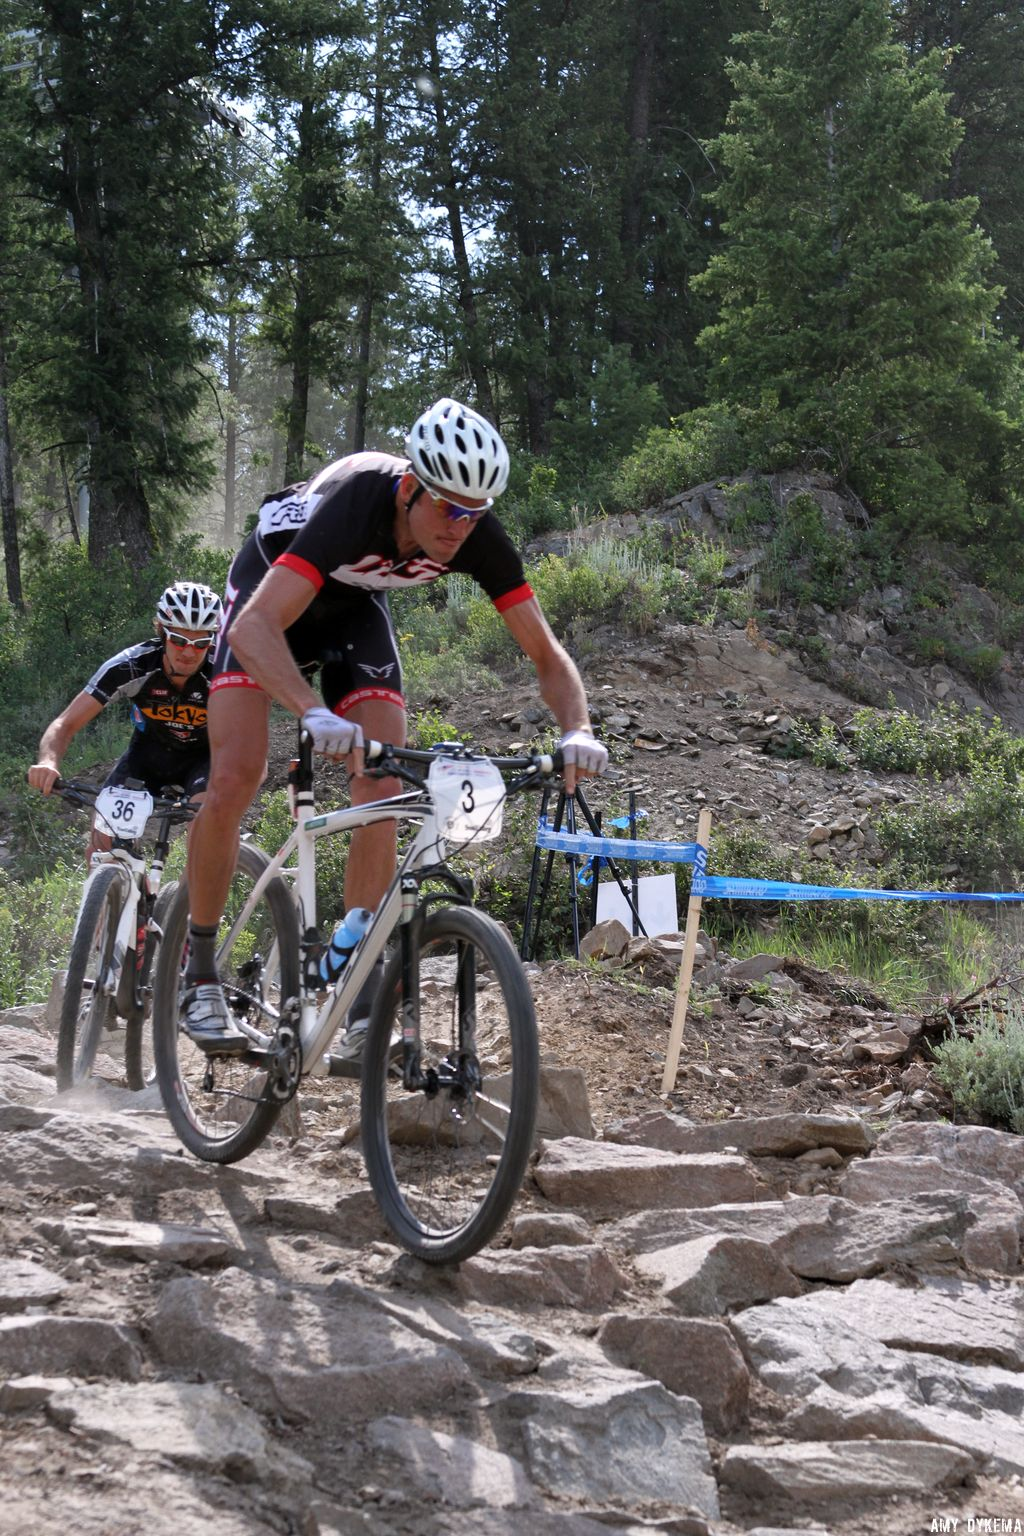 Ryan Trebon at the end of the first lap coming through the rock drop. ©Amy Dykema